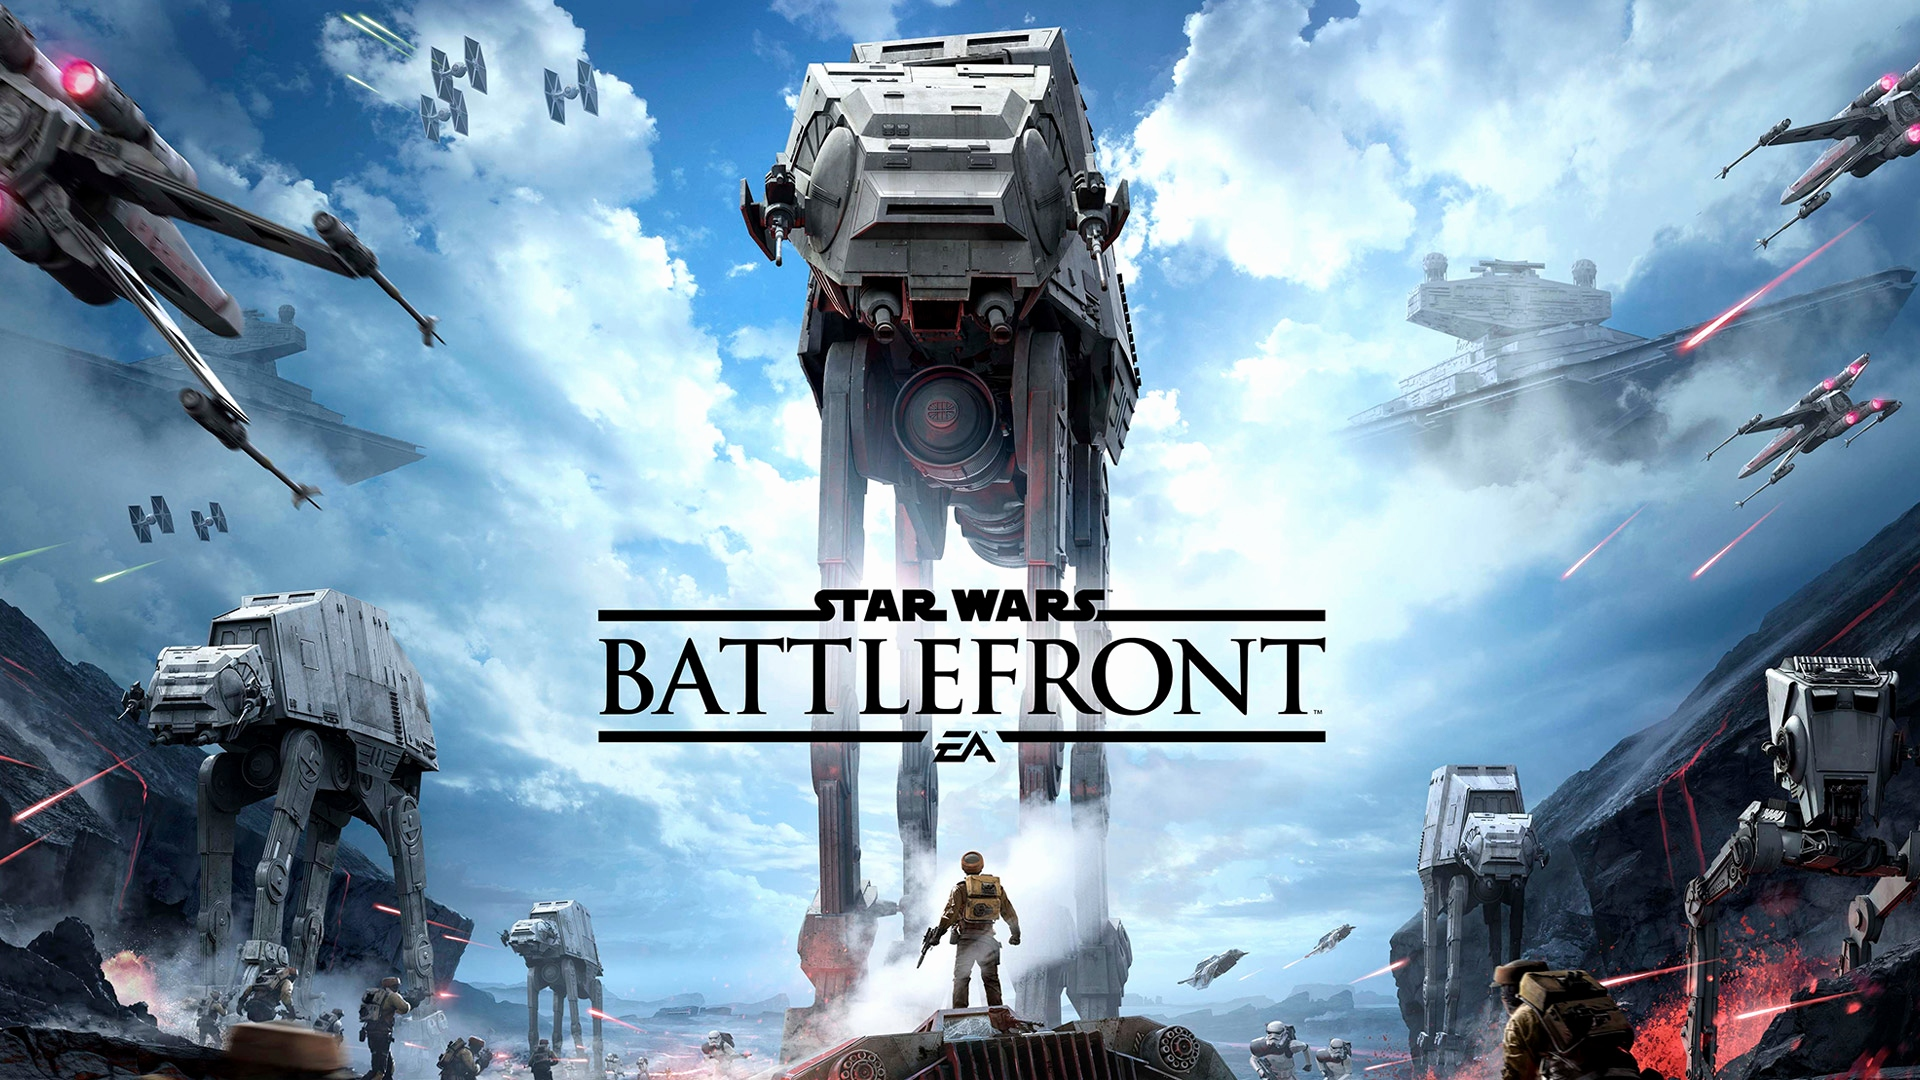 Star Wars Online Game Kostenlos Inspirierend Star Wars™ Battlefront Star Wars Ficial Ea Site